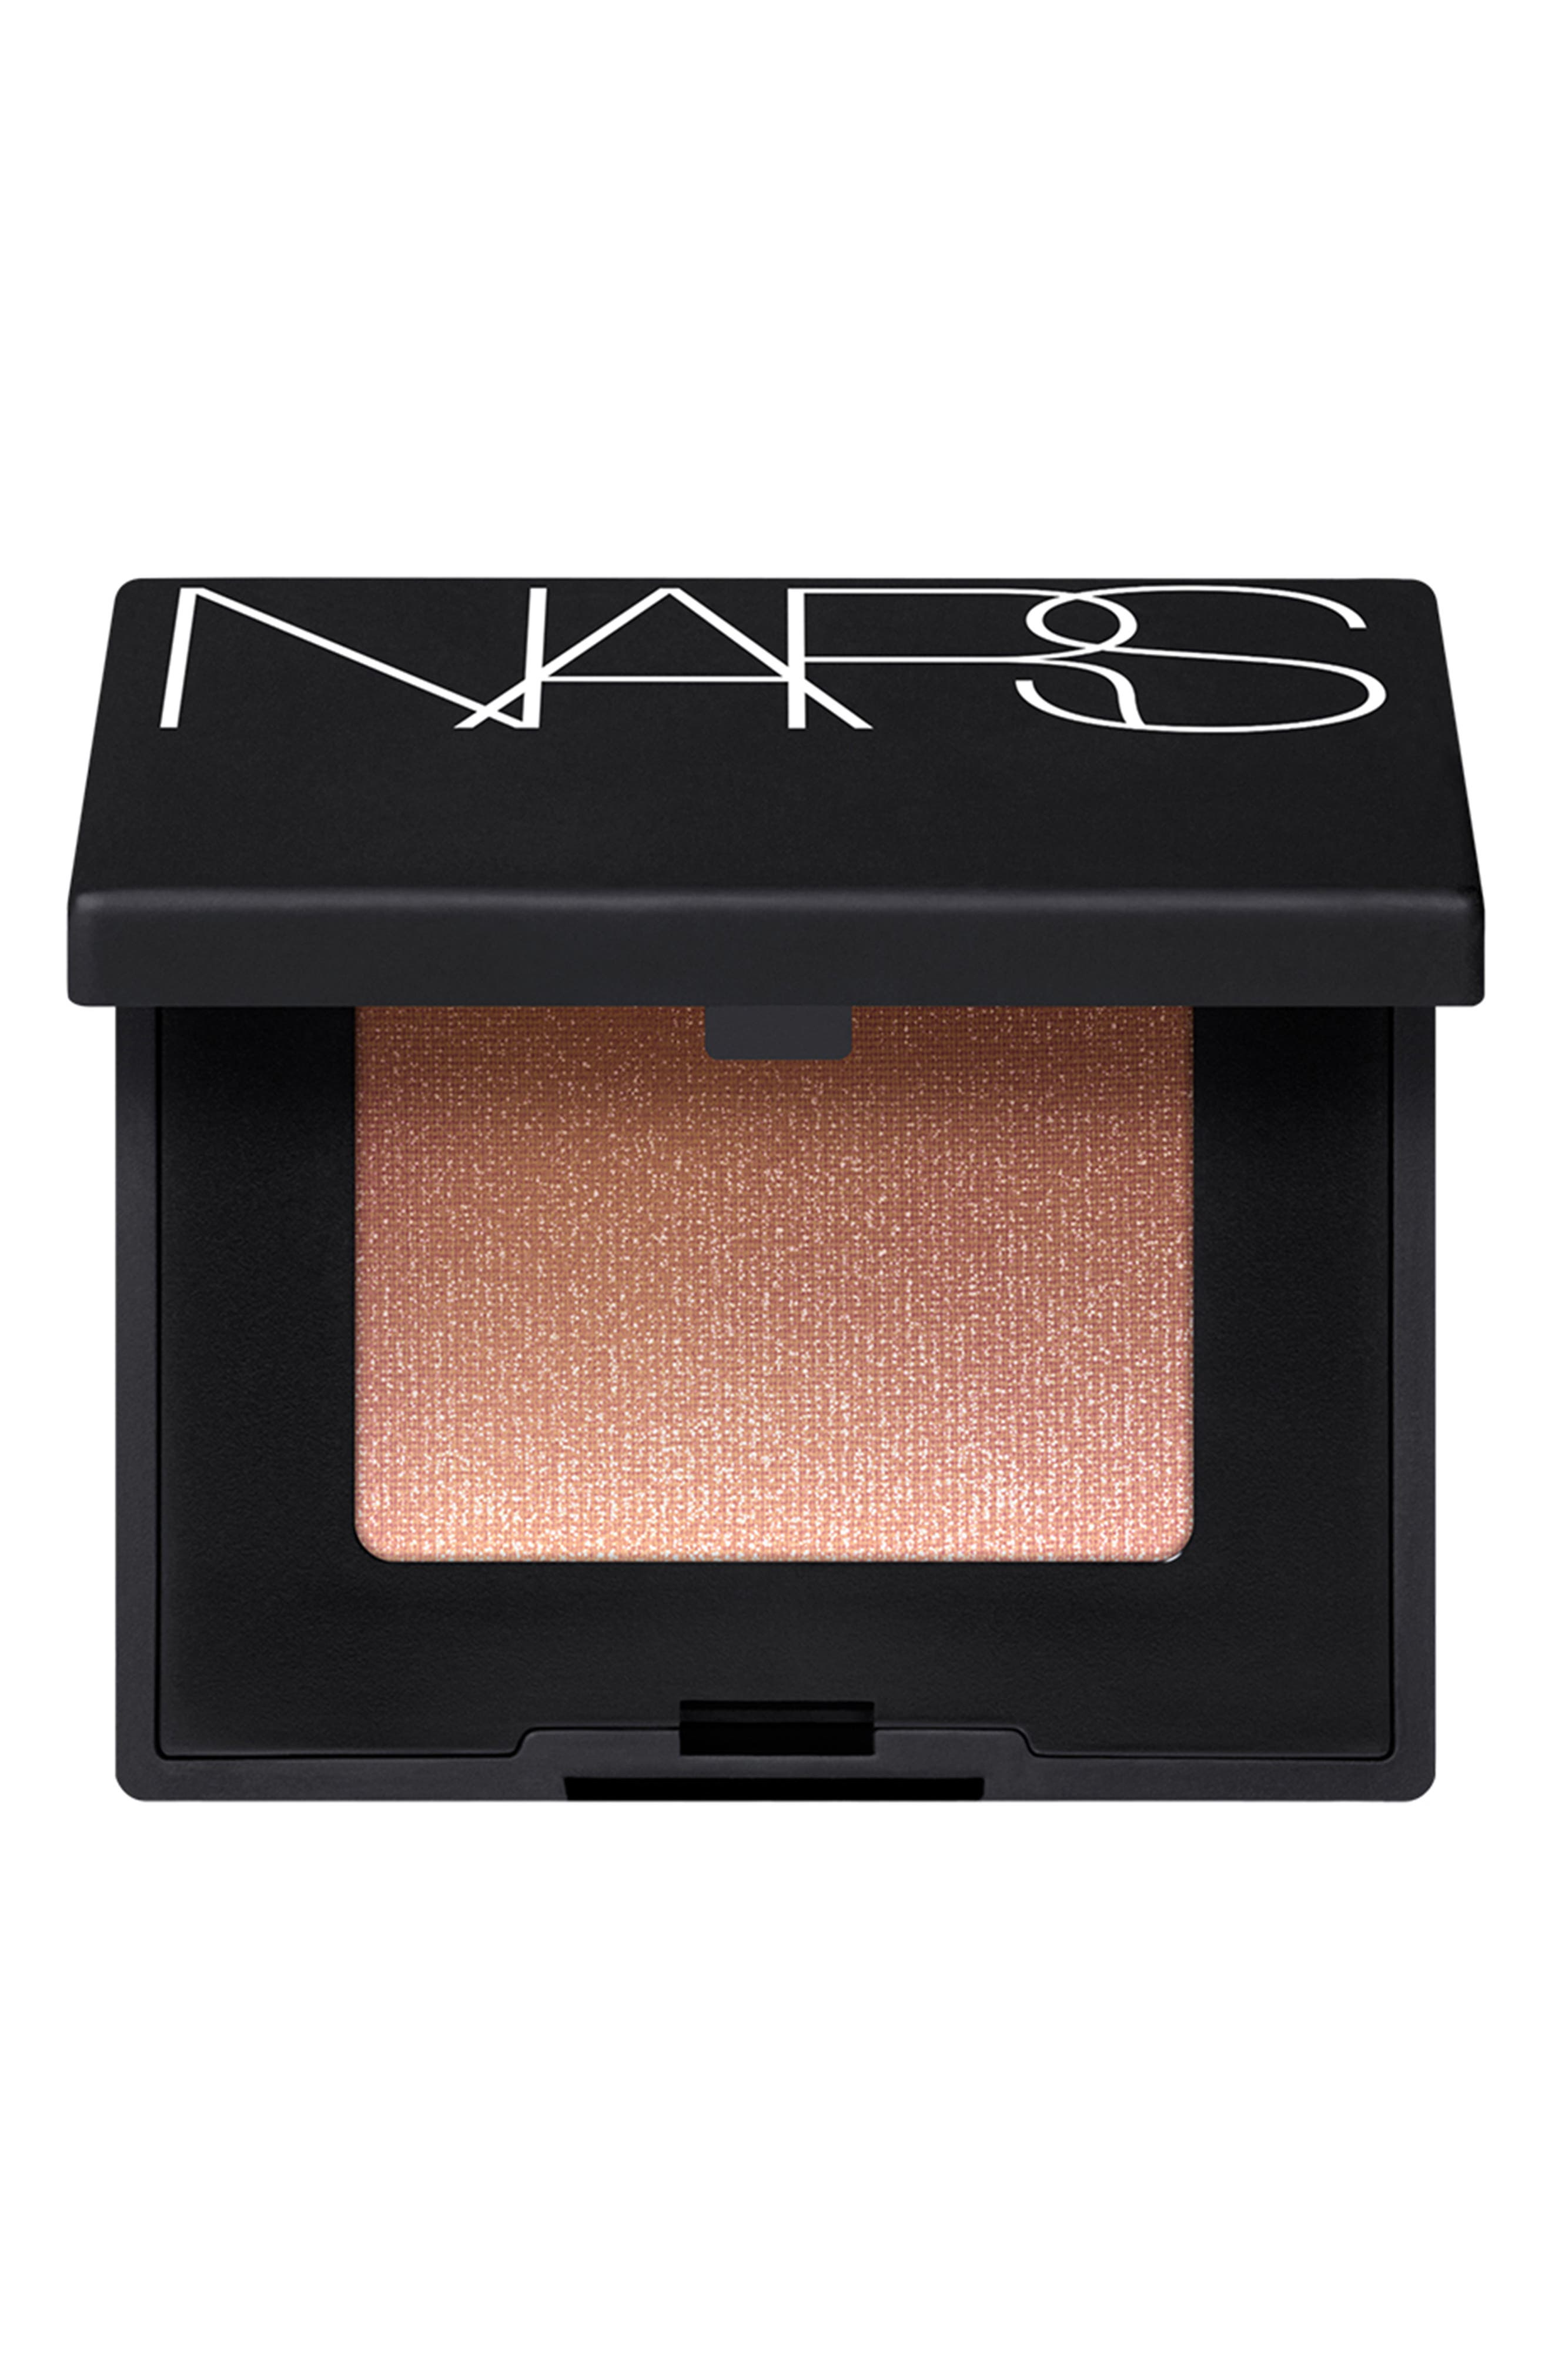 NARS, Precious Metals Single Eyeshadow, Main thumbnail 1, color, VIRGIN GORDA